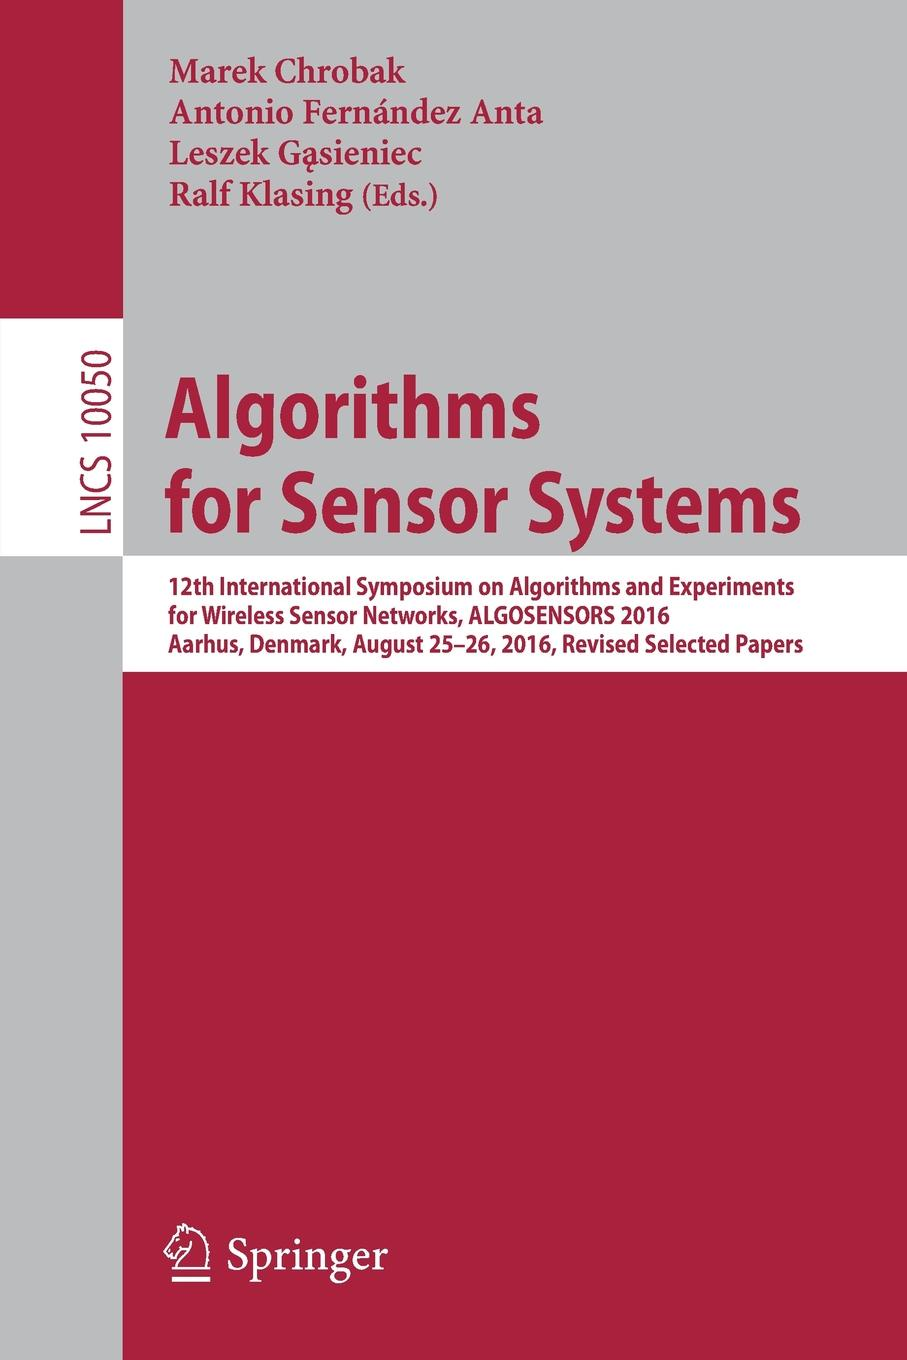 купить Algorithms for Sensor Systems. 12th International Symposium on Algorithms and Experiments for Wireless Sensor Networks, ALGOSENSORS 2016, Aarhus, Denmark, August 25-26, 2016, Revised Selected Papers дешево